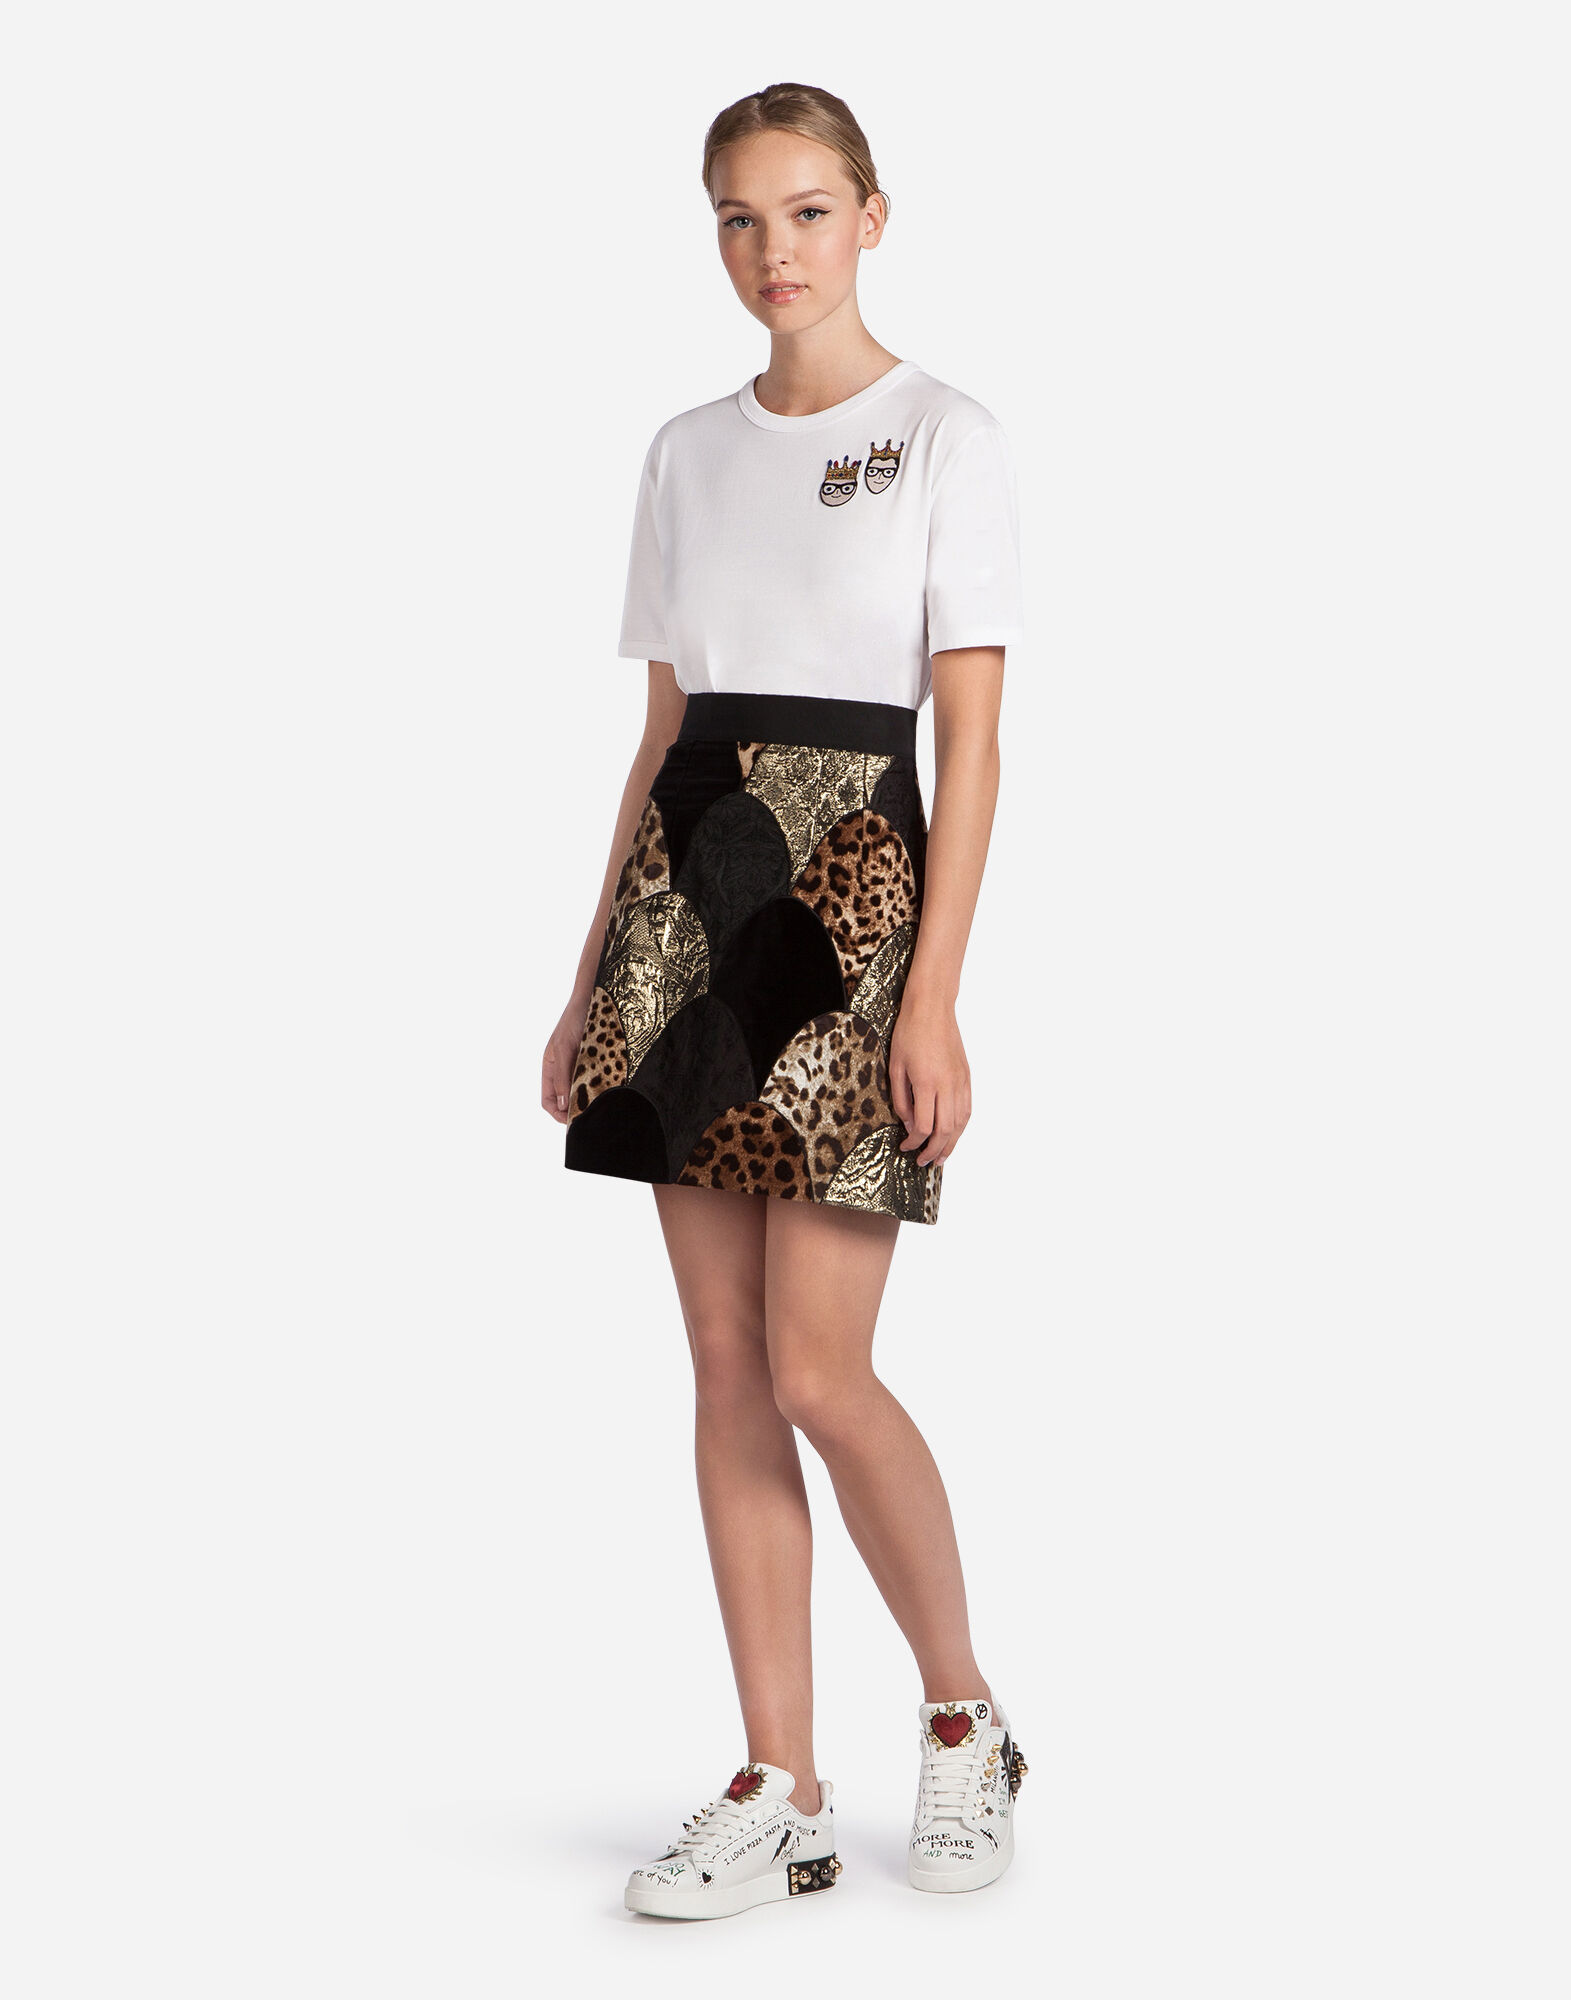 PATCHWORK SKIRT IN A MIX OF MATERIALS